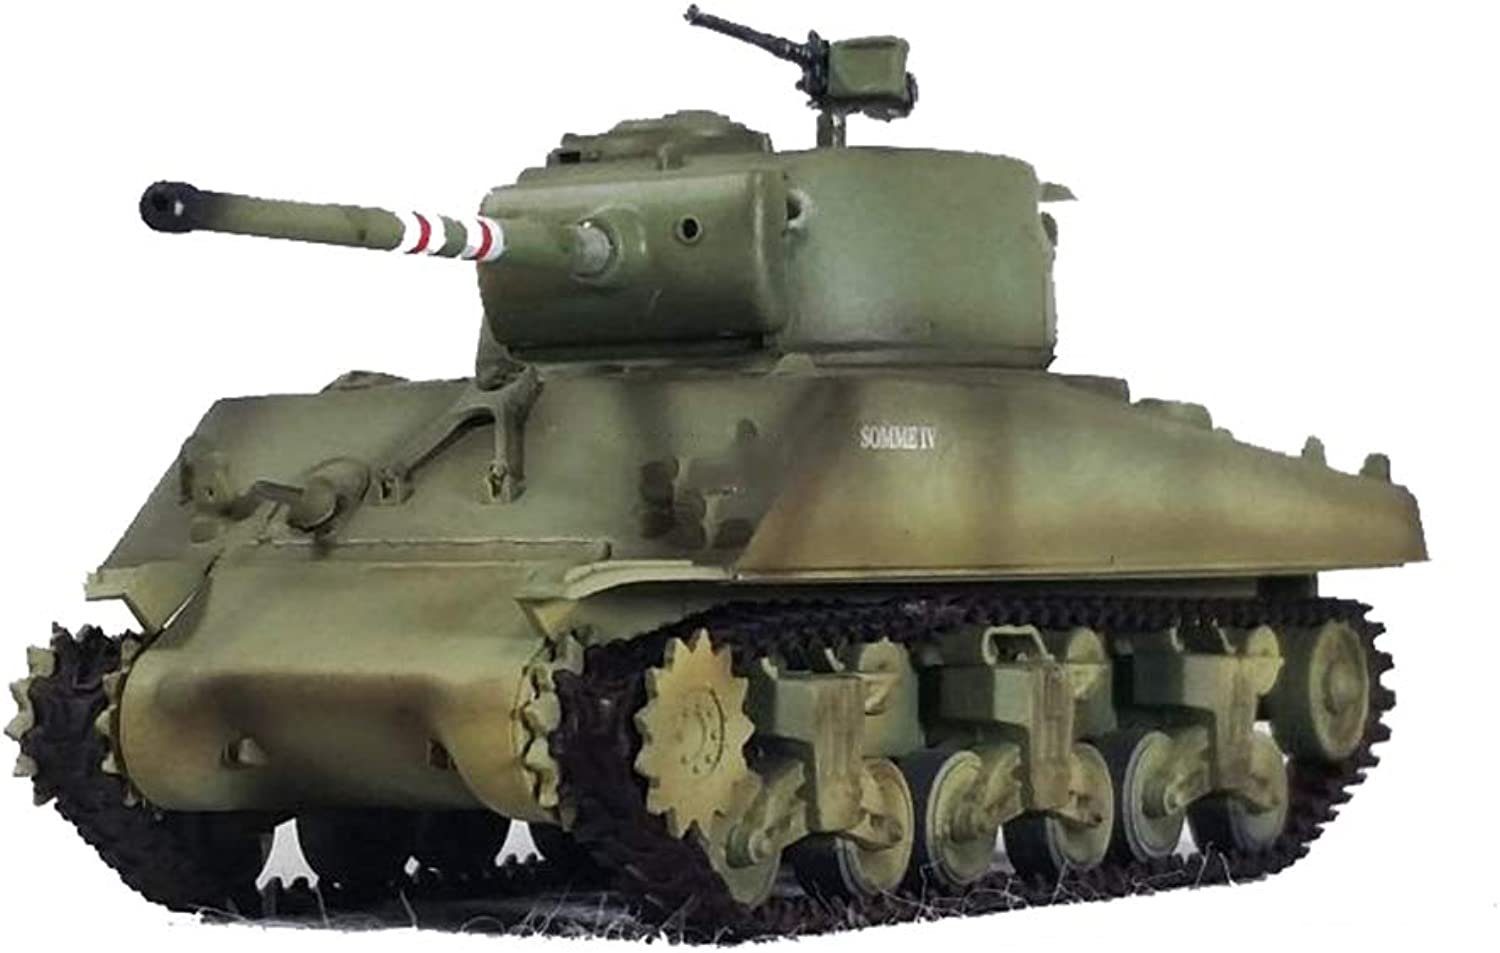 Model Toys, World War Ii Arms Usa  M4A3 (76) W  Tank Finished Model, Vintage Military Decorative Souvenirs